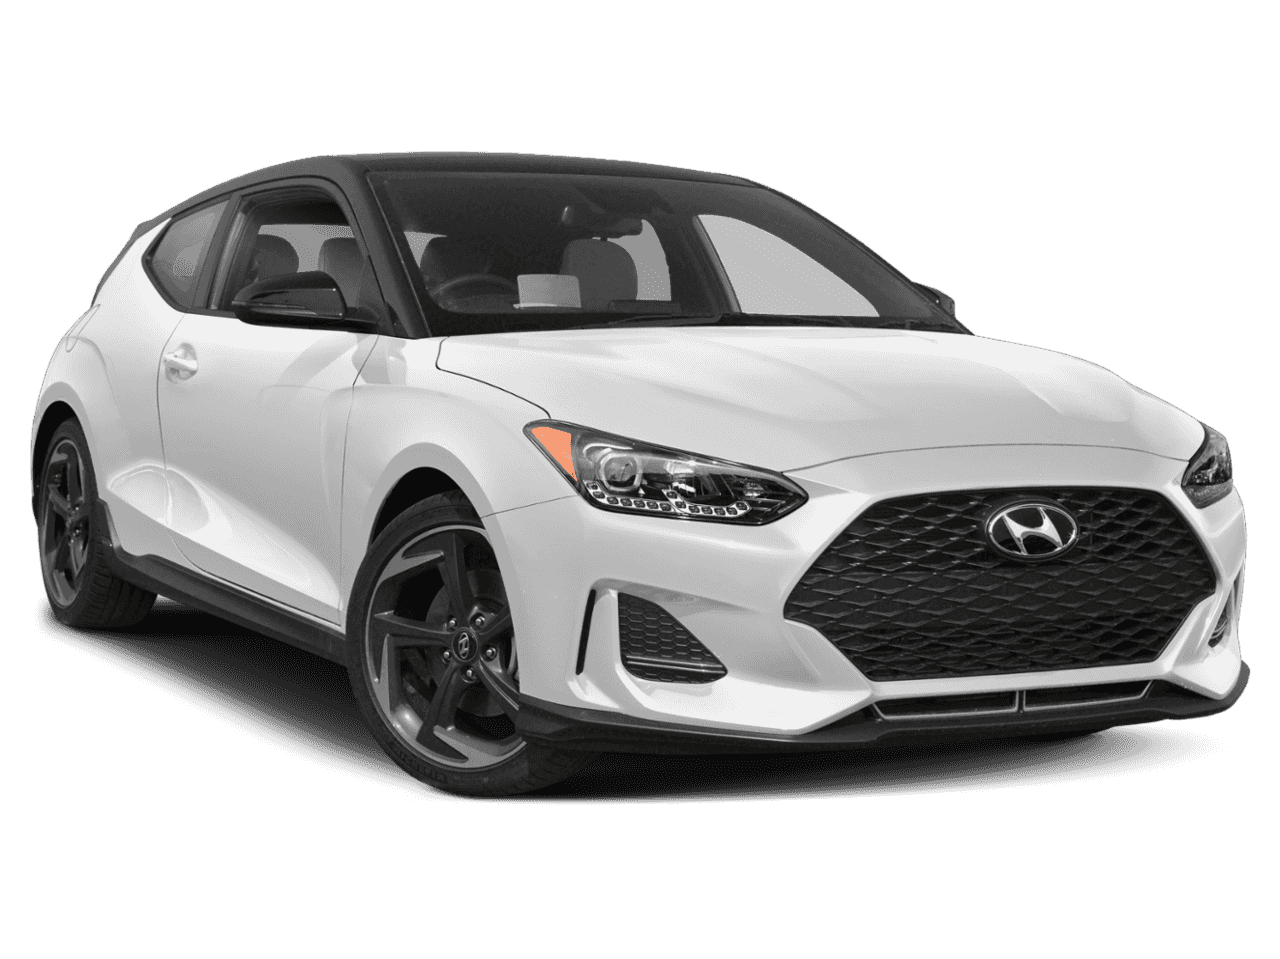 2019 Hyundai Veloster Turbo R-Spec FWD 3dr Car